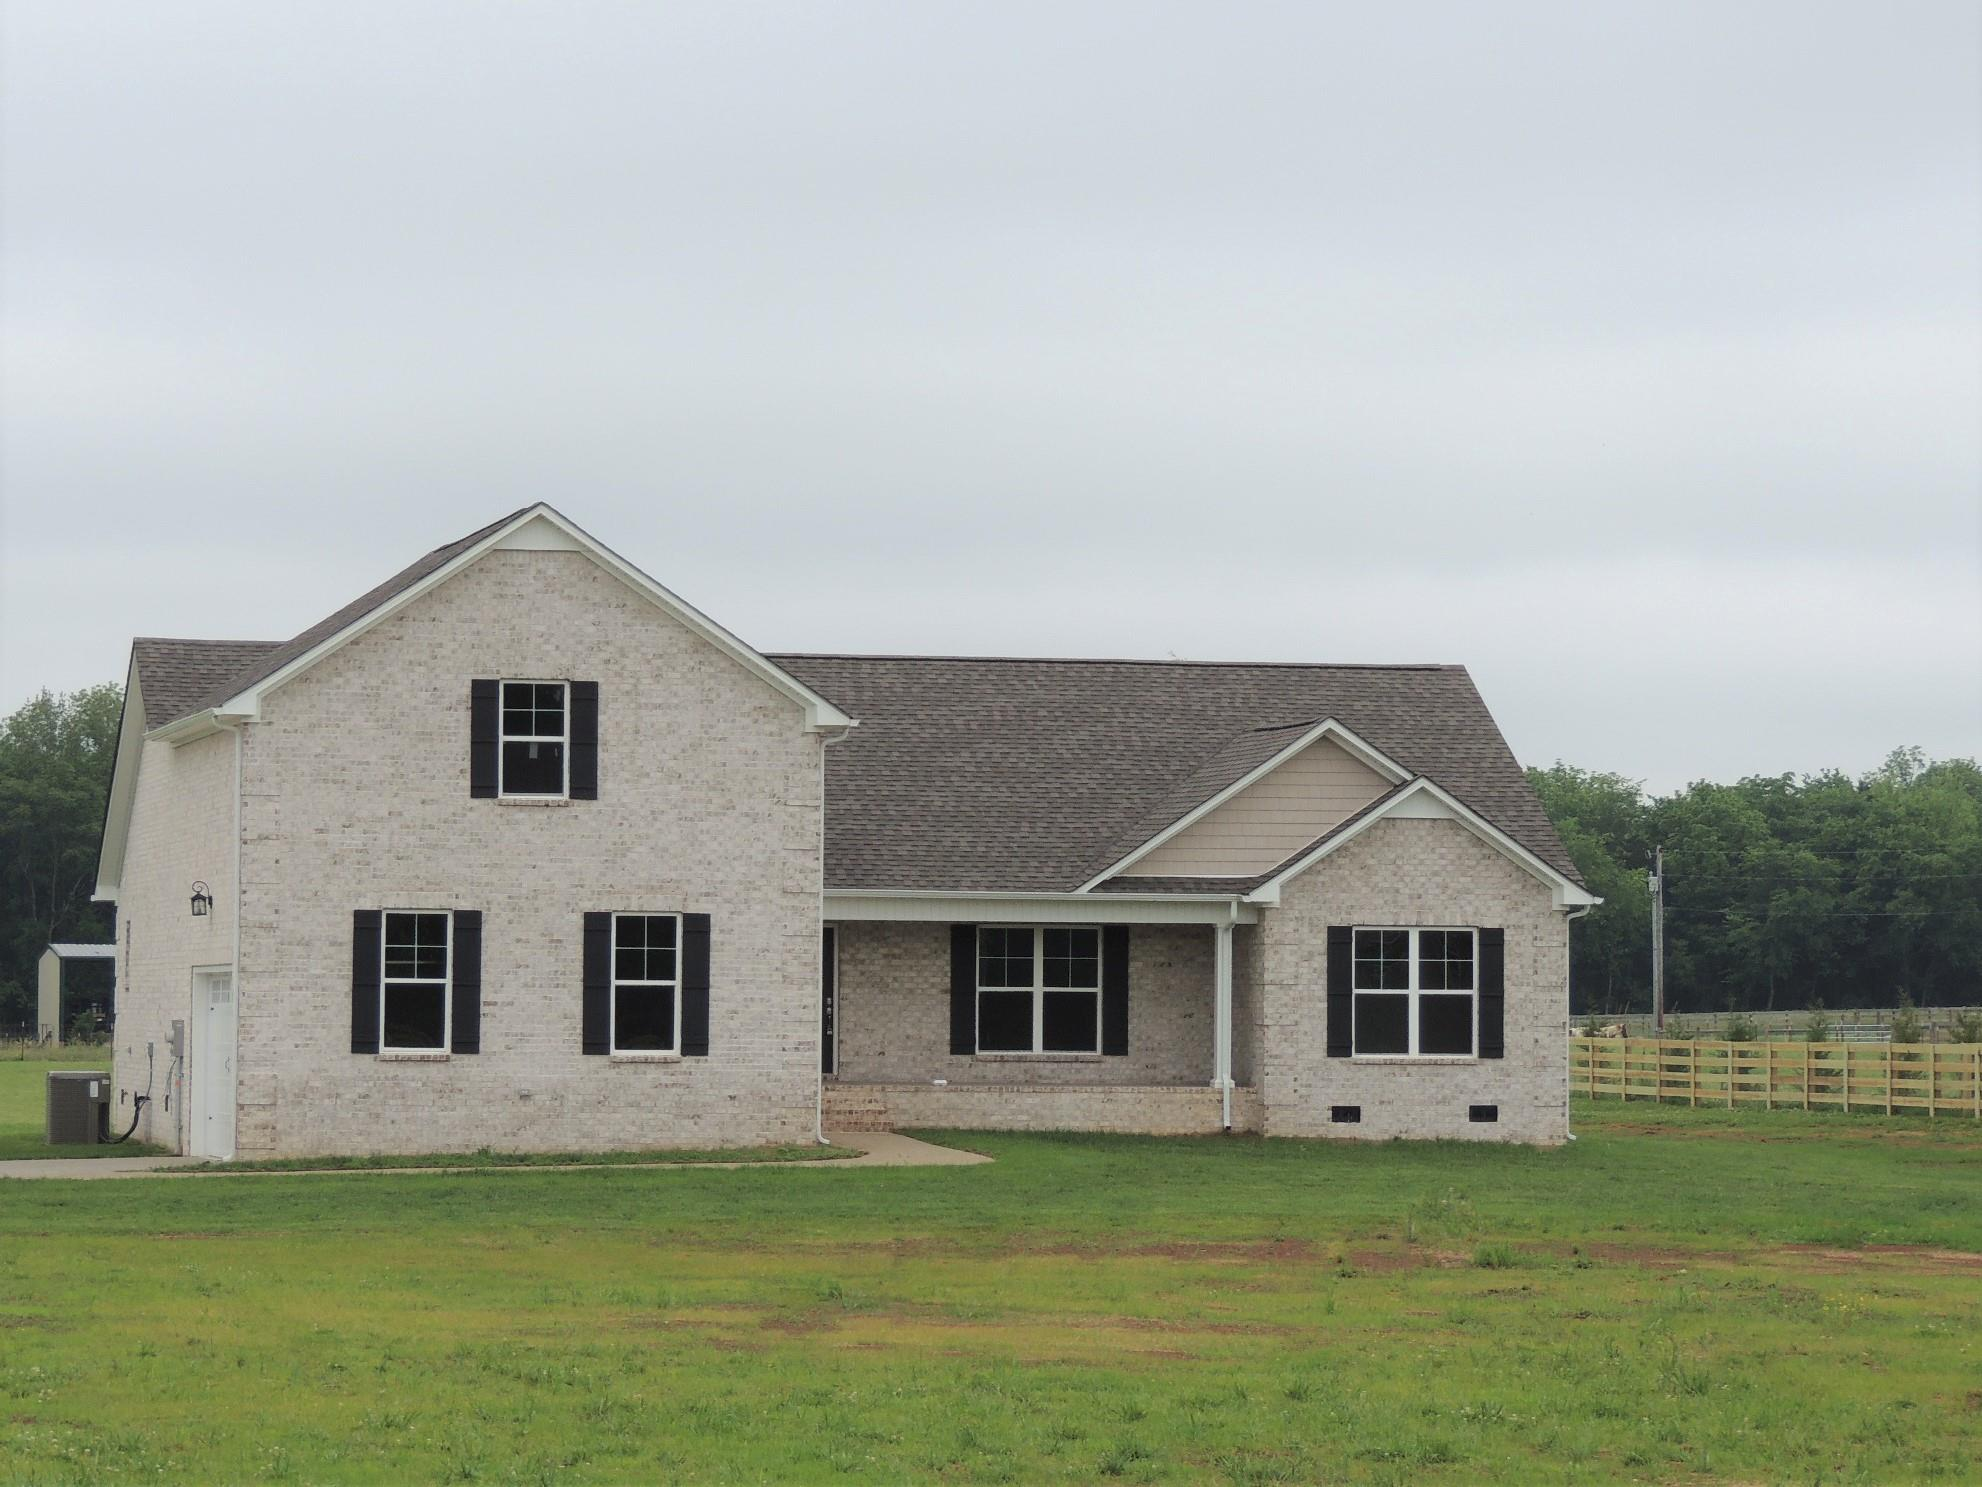 3991 Kelley Farris Rd, Spring Hill, Tennessee